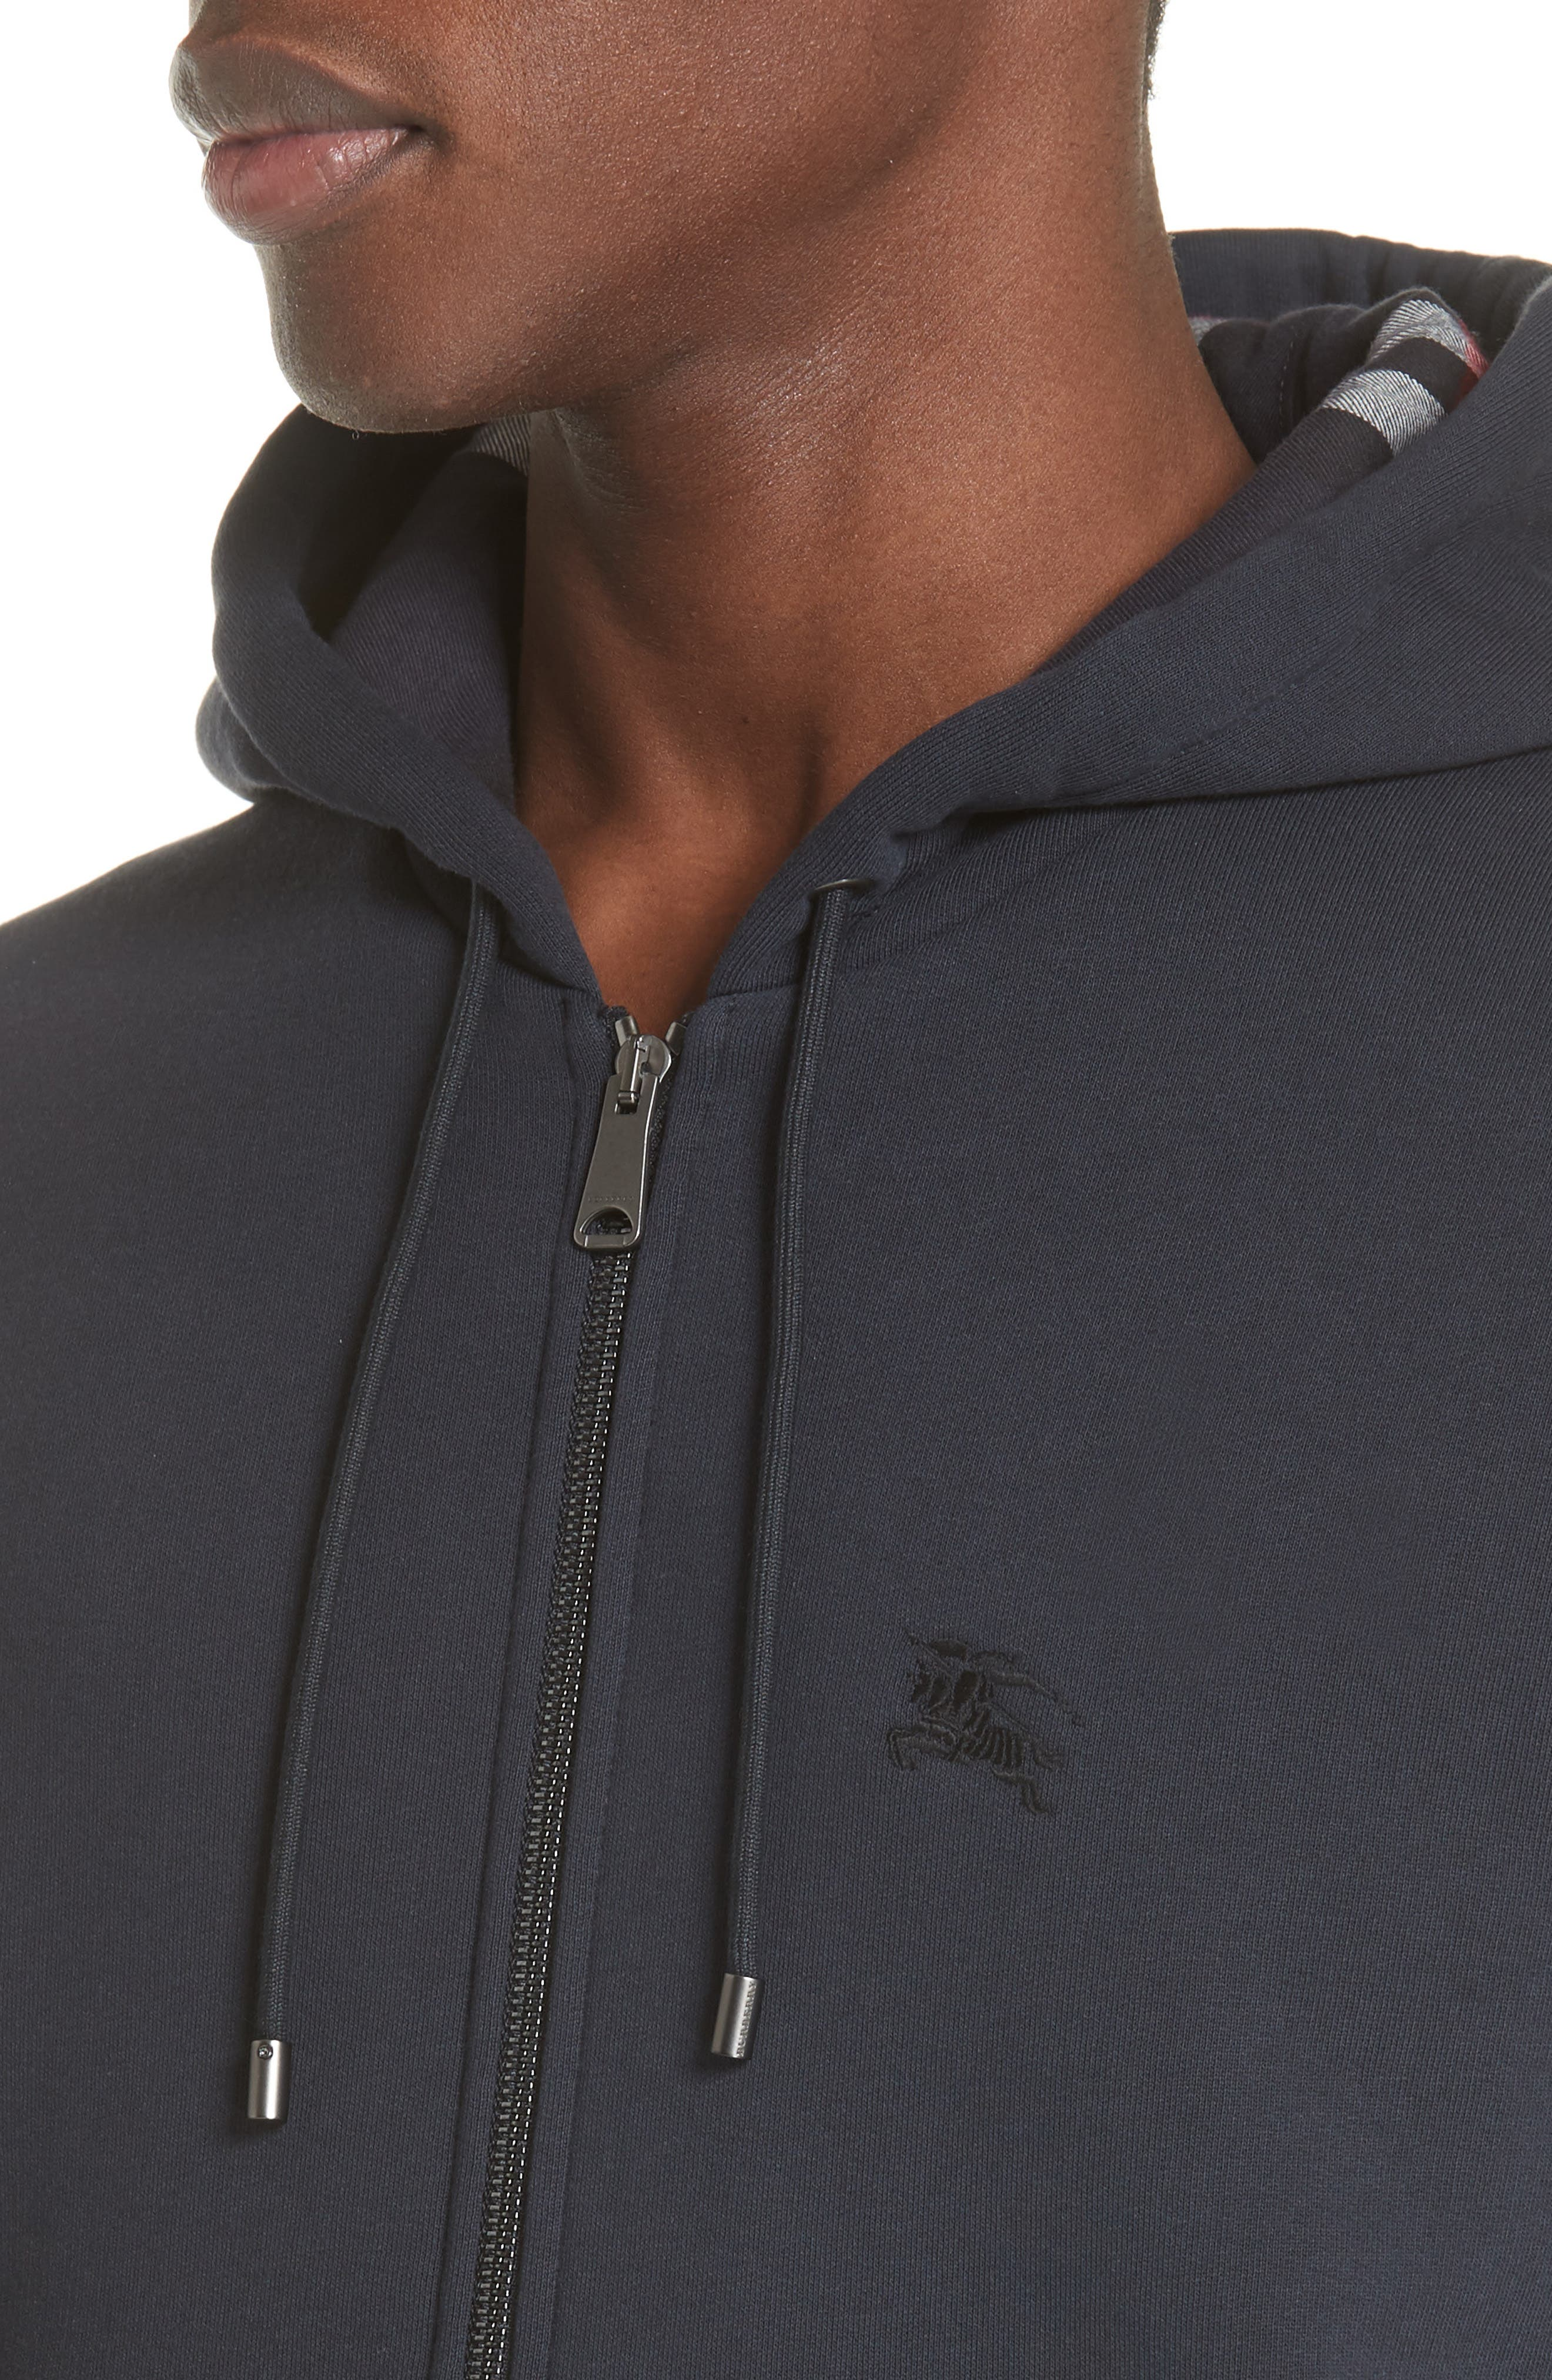 Zip Hoodie,                             Alternate thumbnail 4, color,                             NAVY